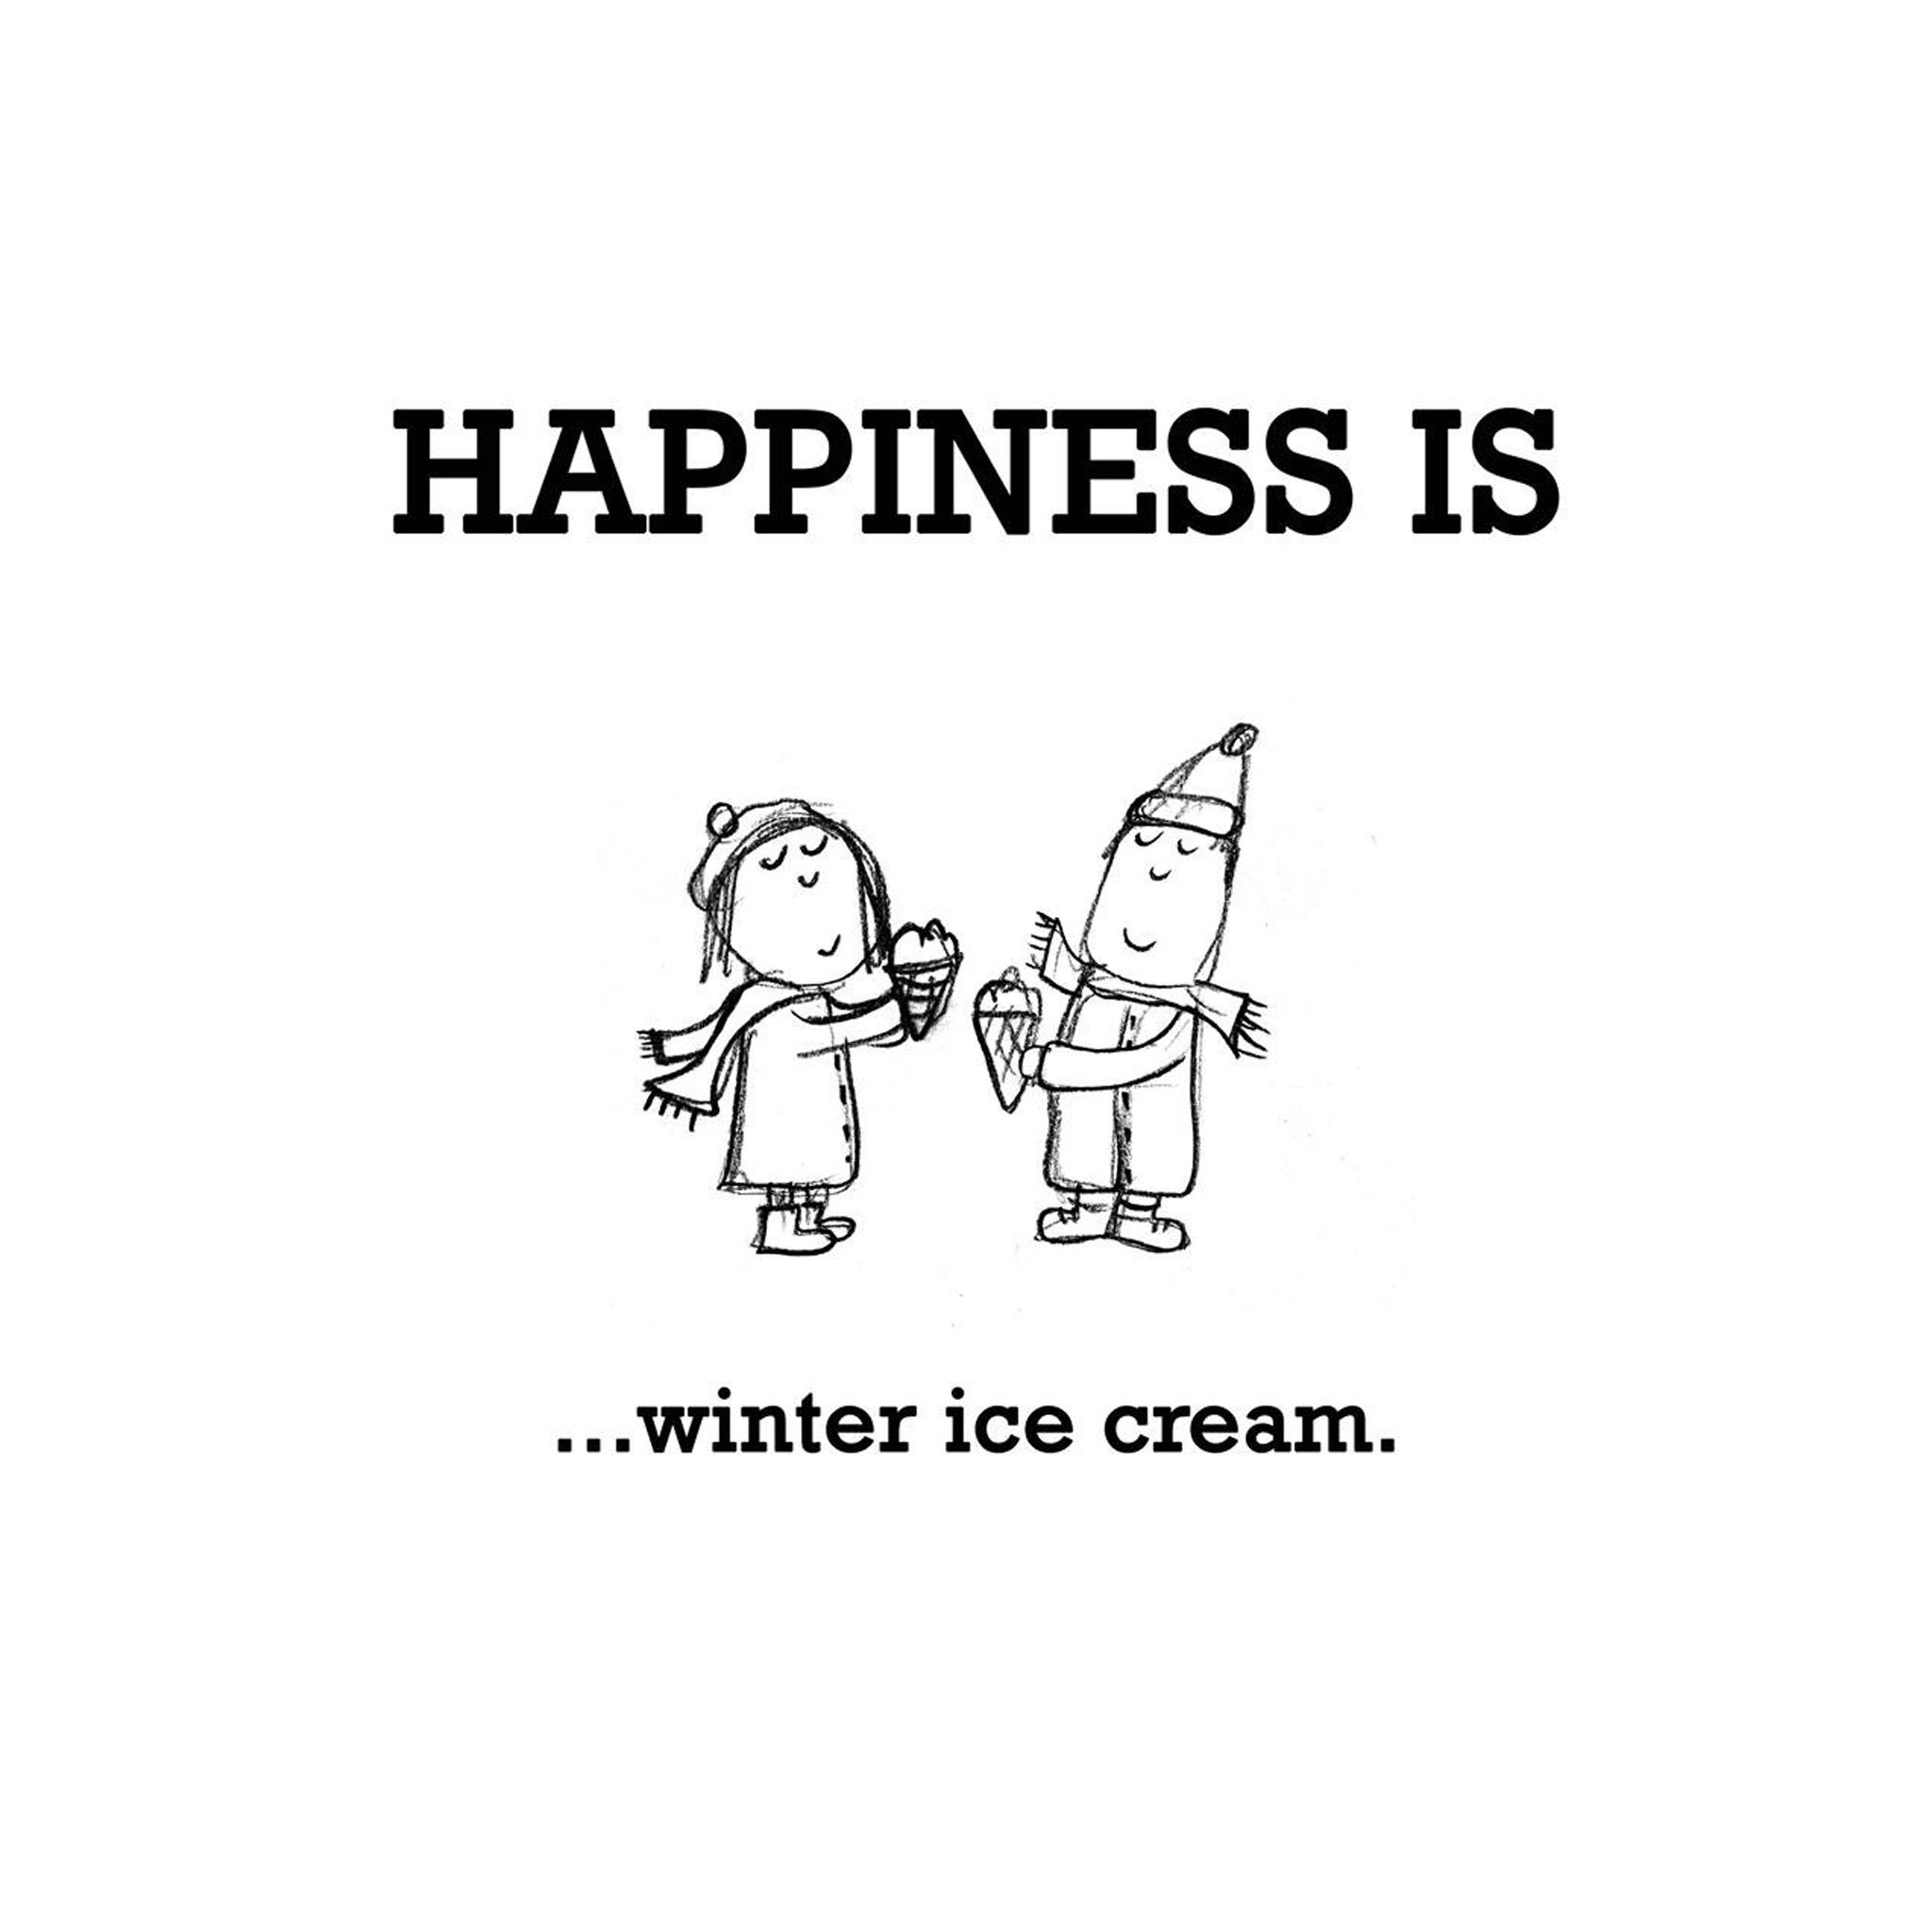 Pin By Katie Rose On Happiness Is Happy Quotes Happy Ice Cream